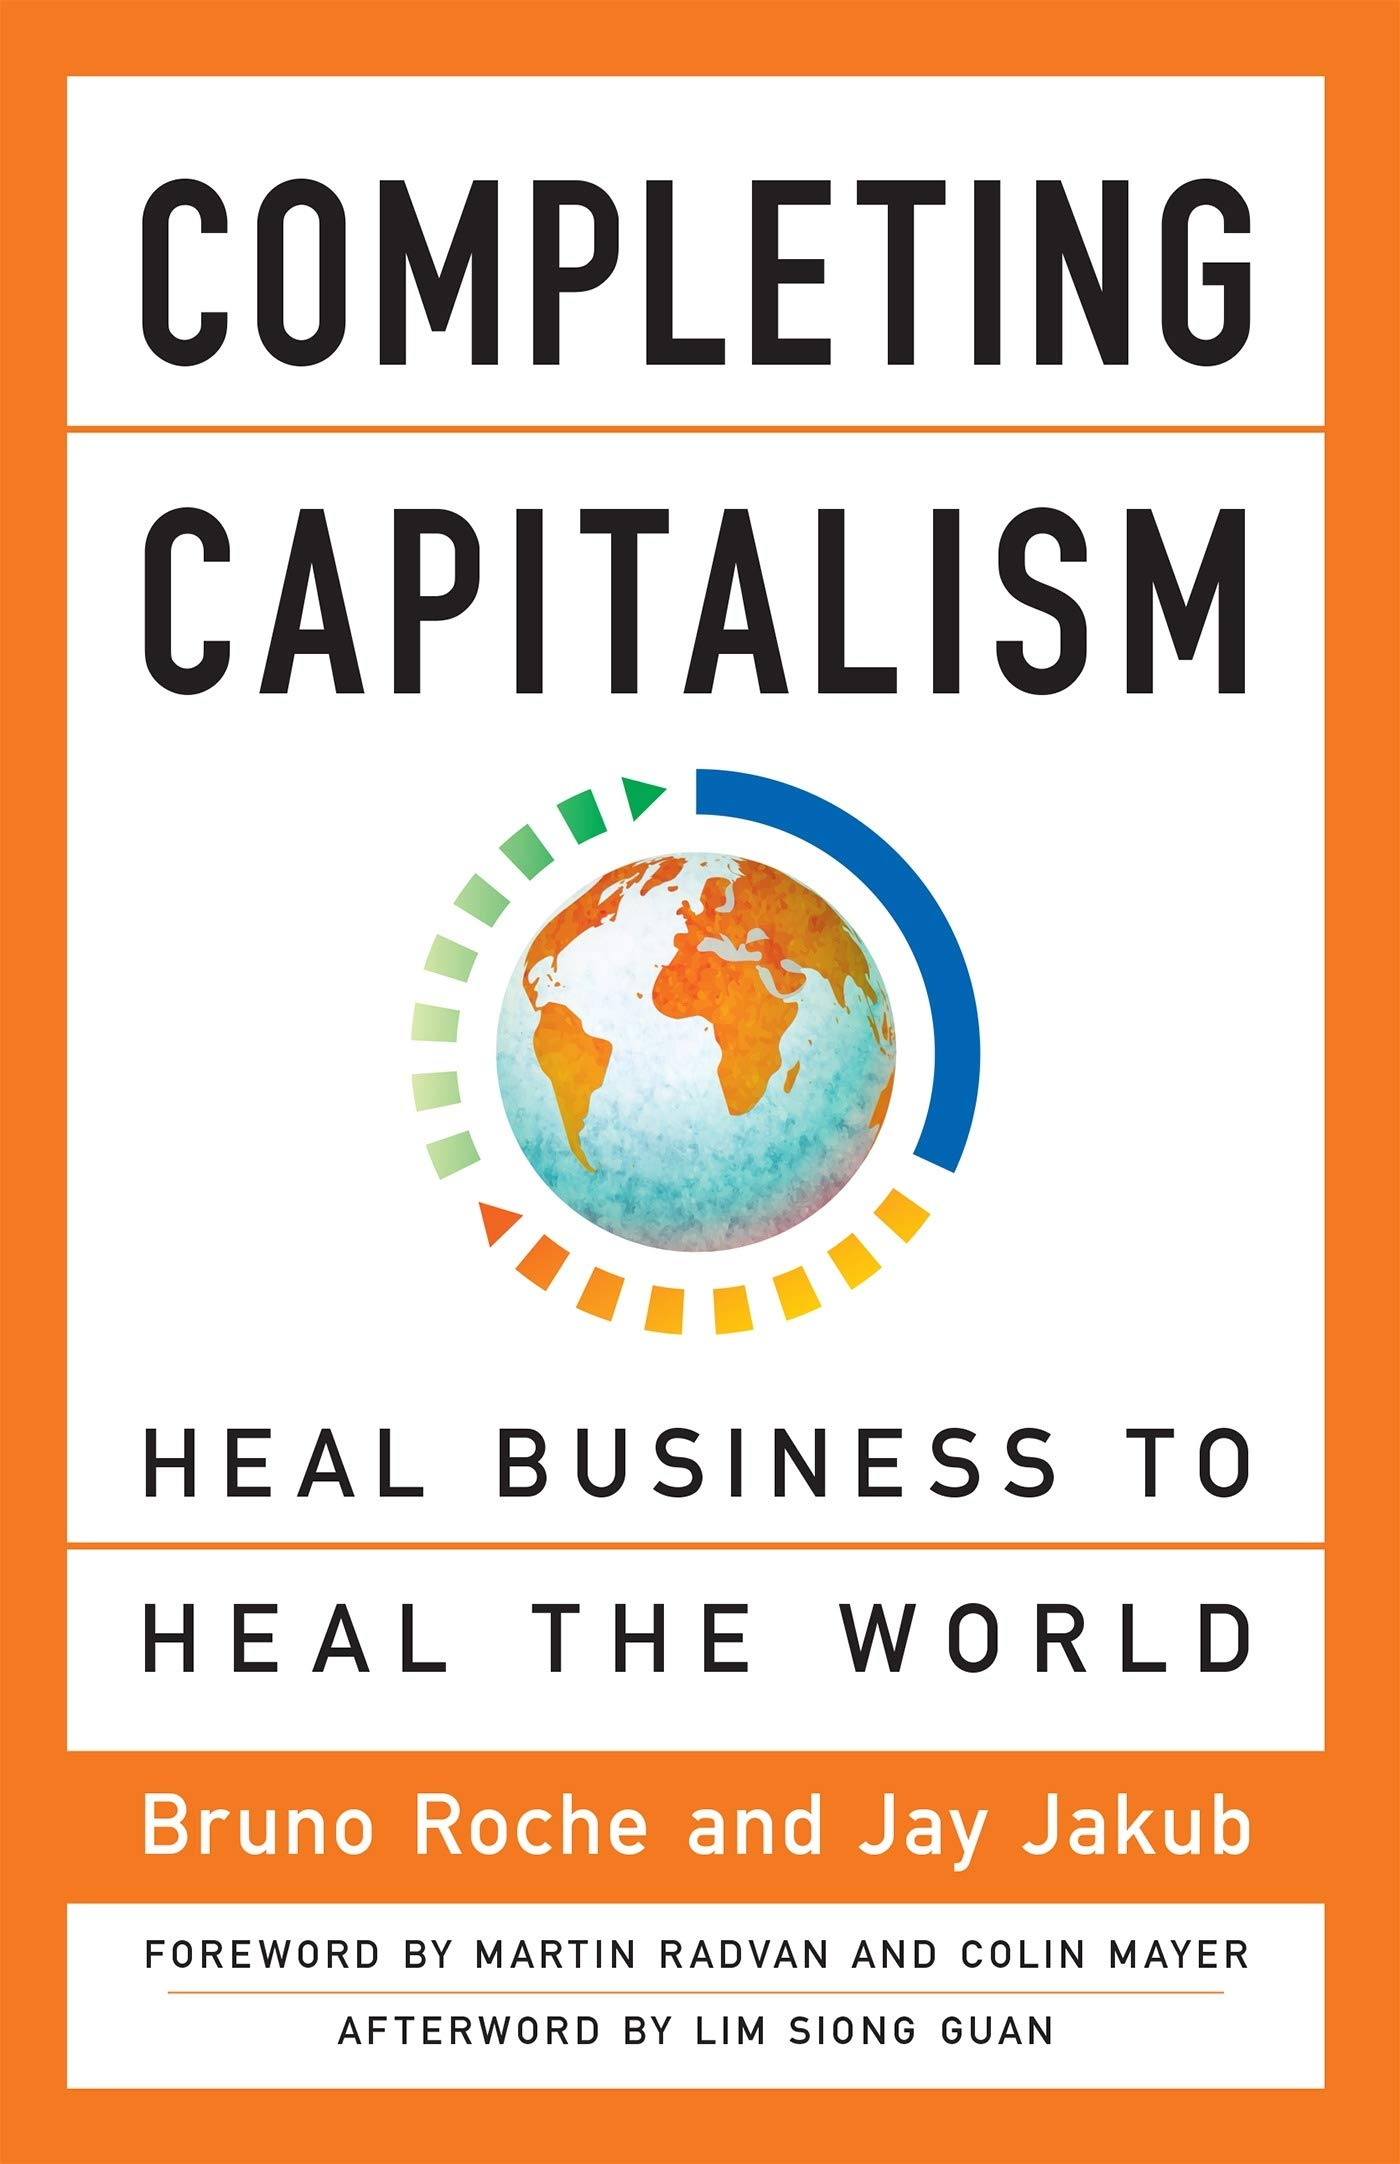 Image OfCompleting Capitalism: Heal Business To Heal The World